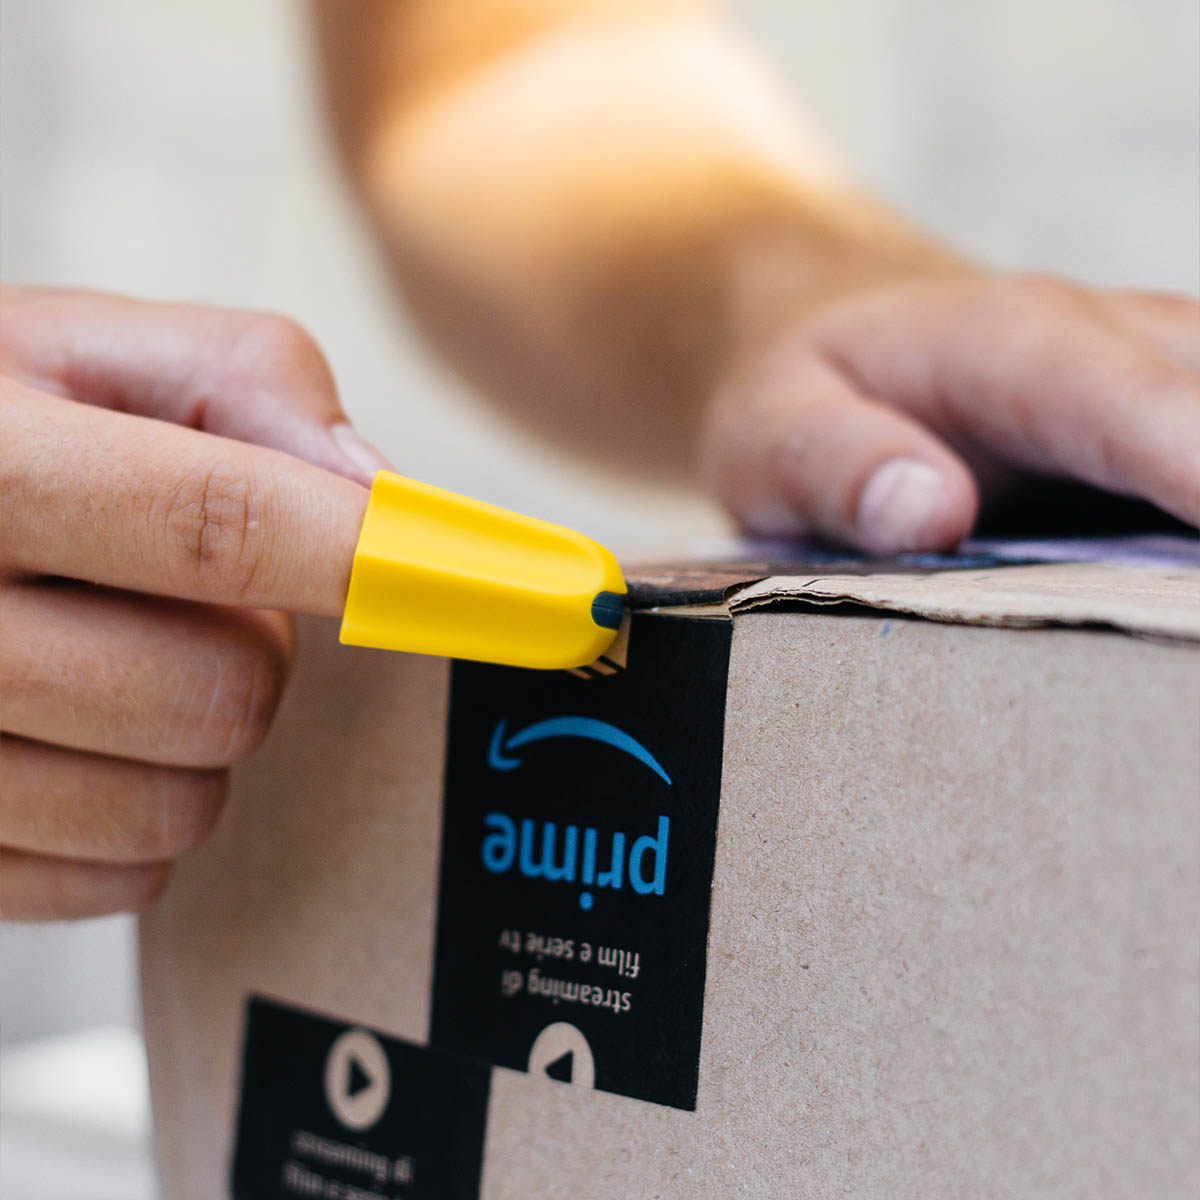 image of finger Safety cutter cutting a package